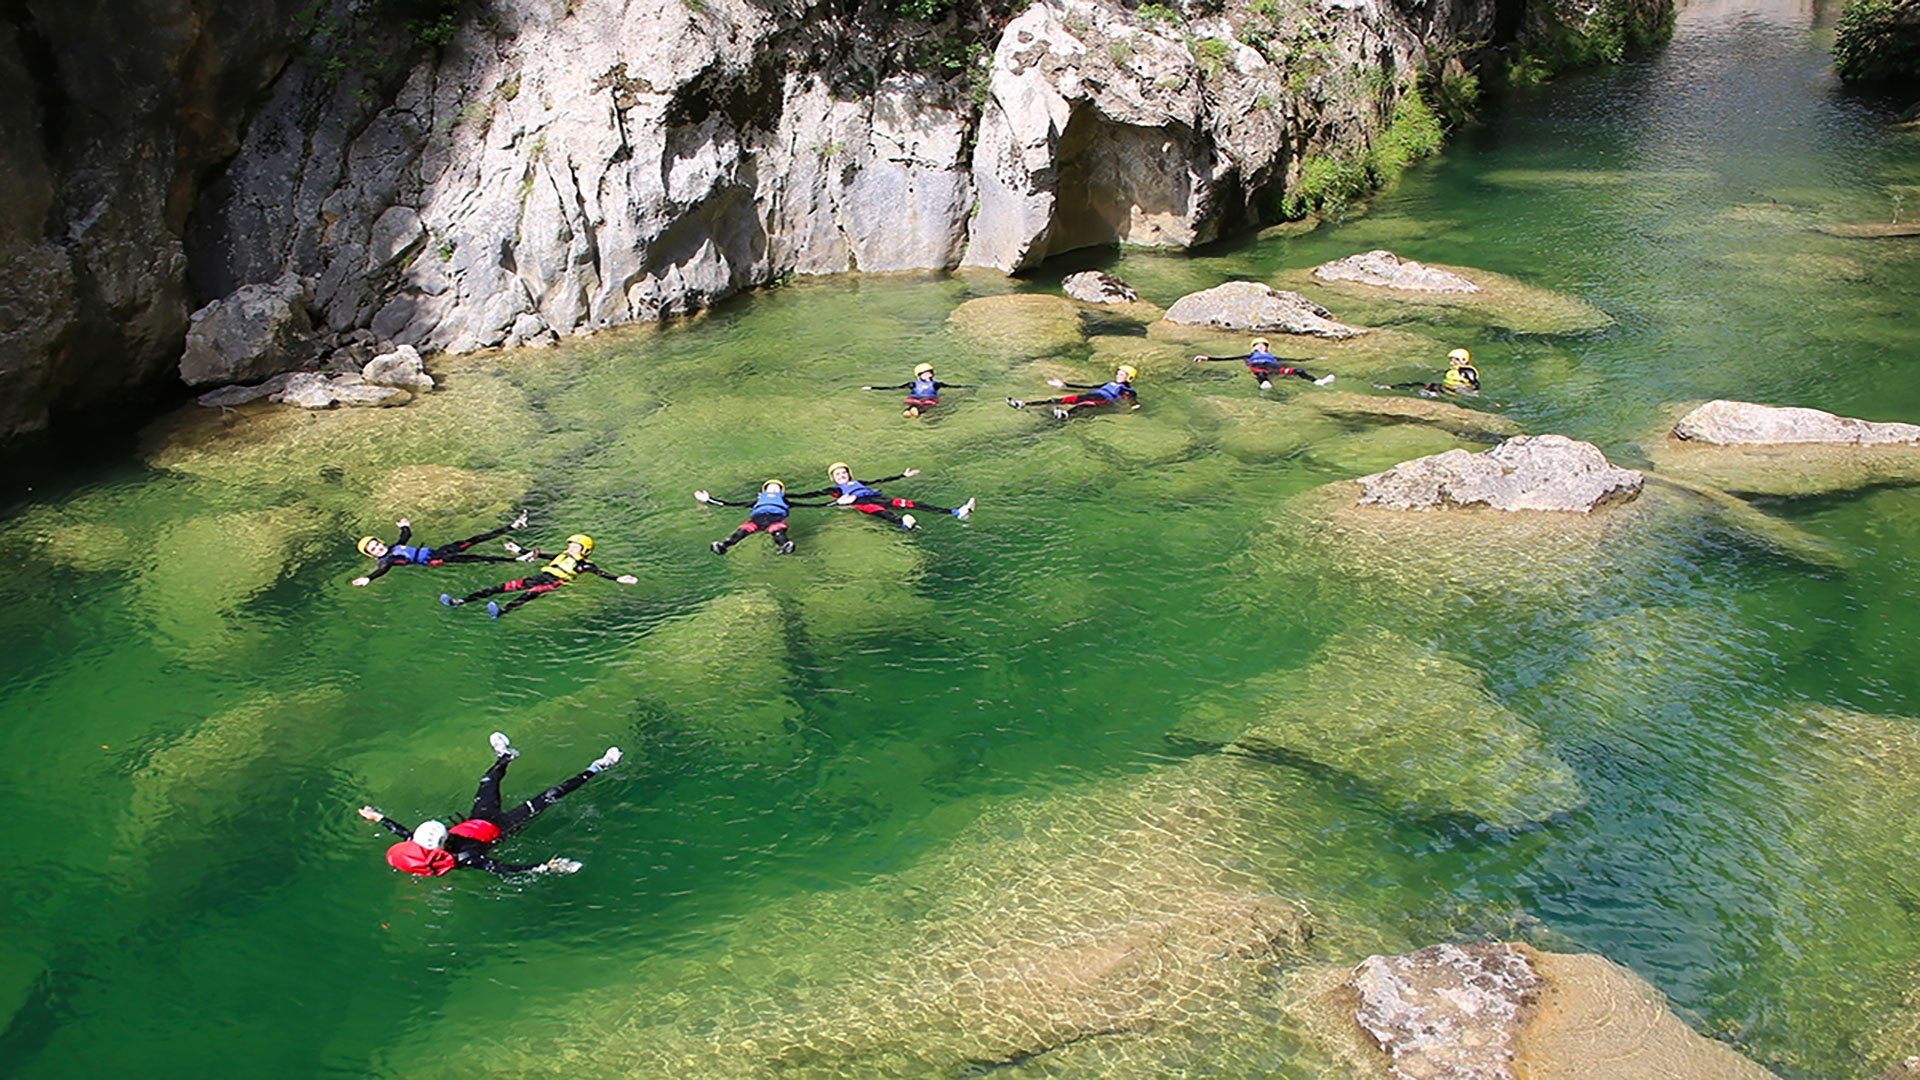 Canyoners swimming in a river during canyoning